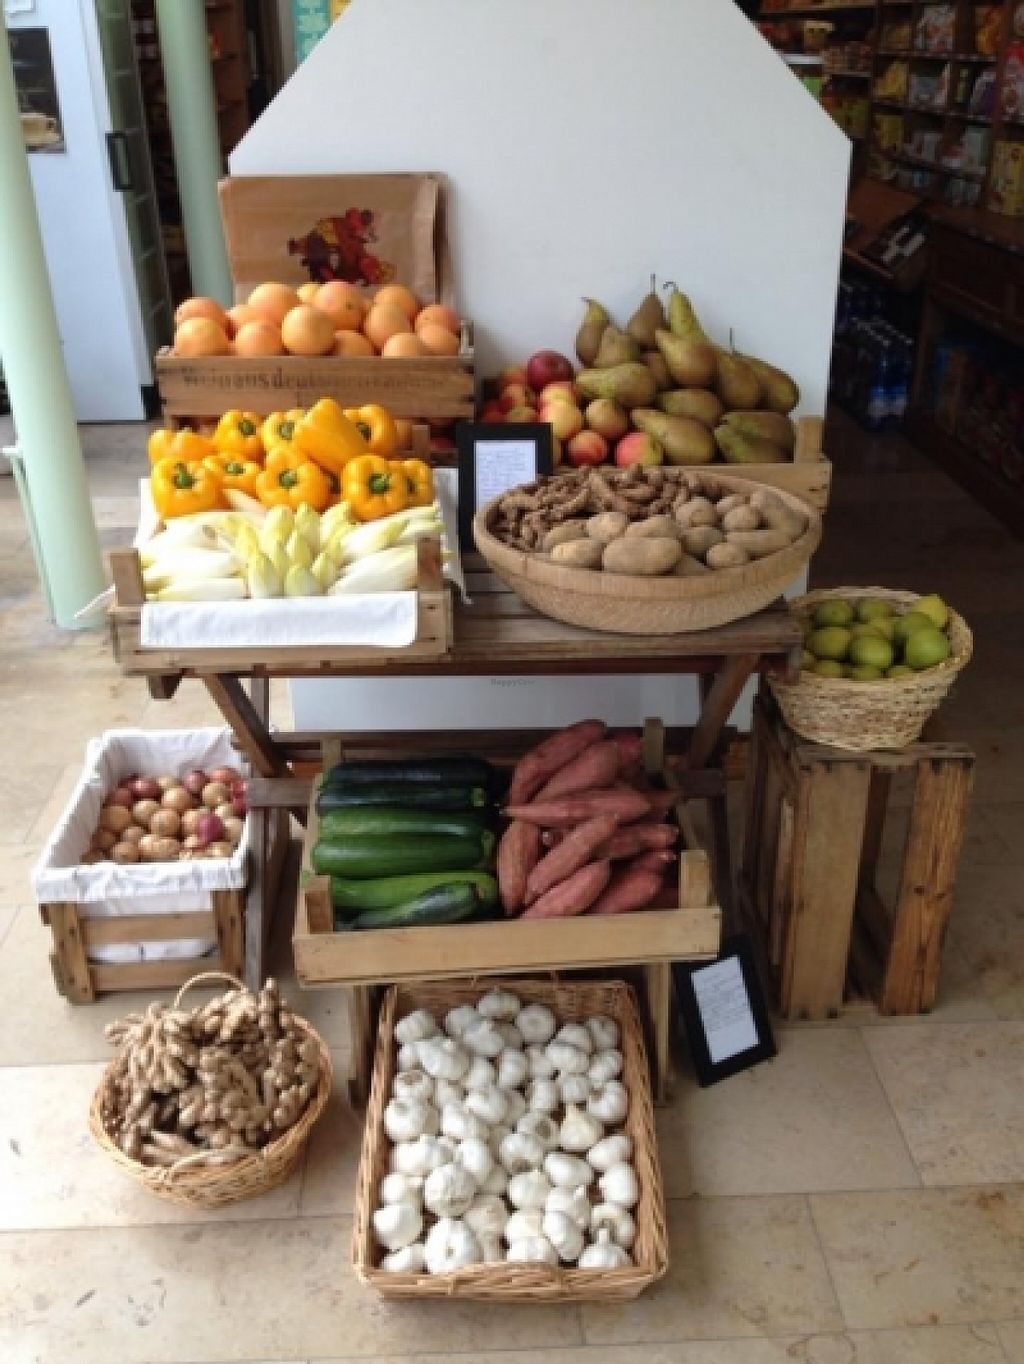 """Photo of CLOSED: Happy Food Store  by <a href=""""/members/profile/KrisRussel"""">KrisRussel</a> <br/>a few fruits and vegs <br/> June 12, 2016  - <a href='/contact/abuse/image/74830/153617'>Report</a>"""